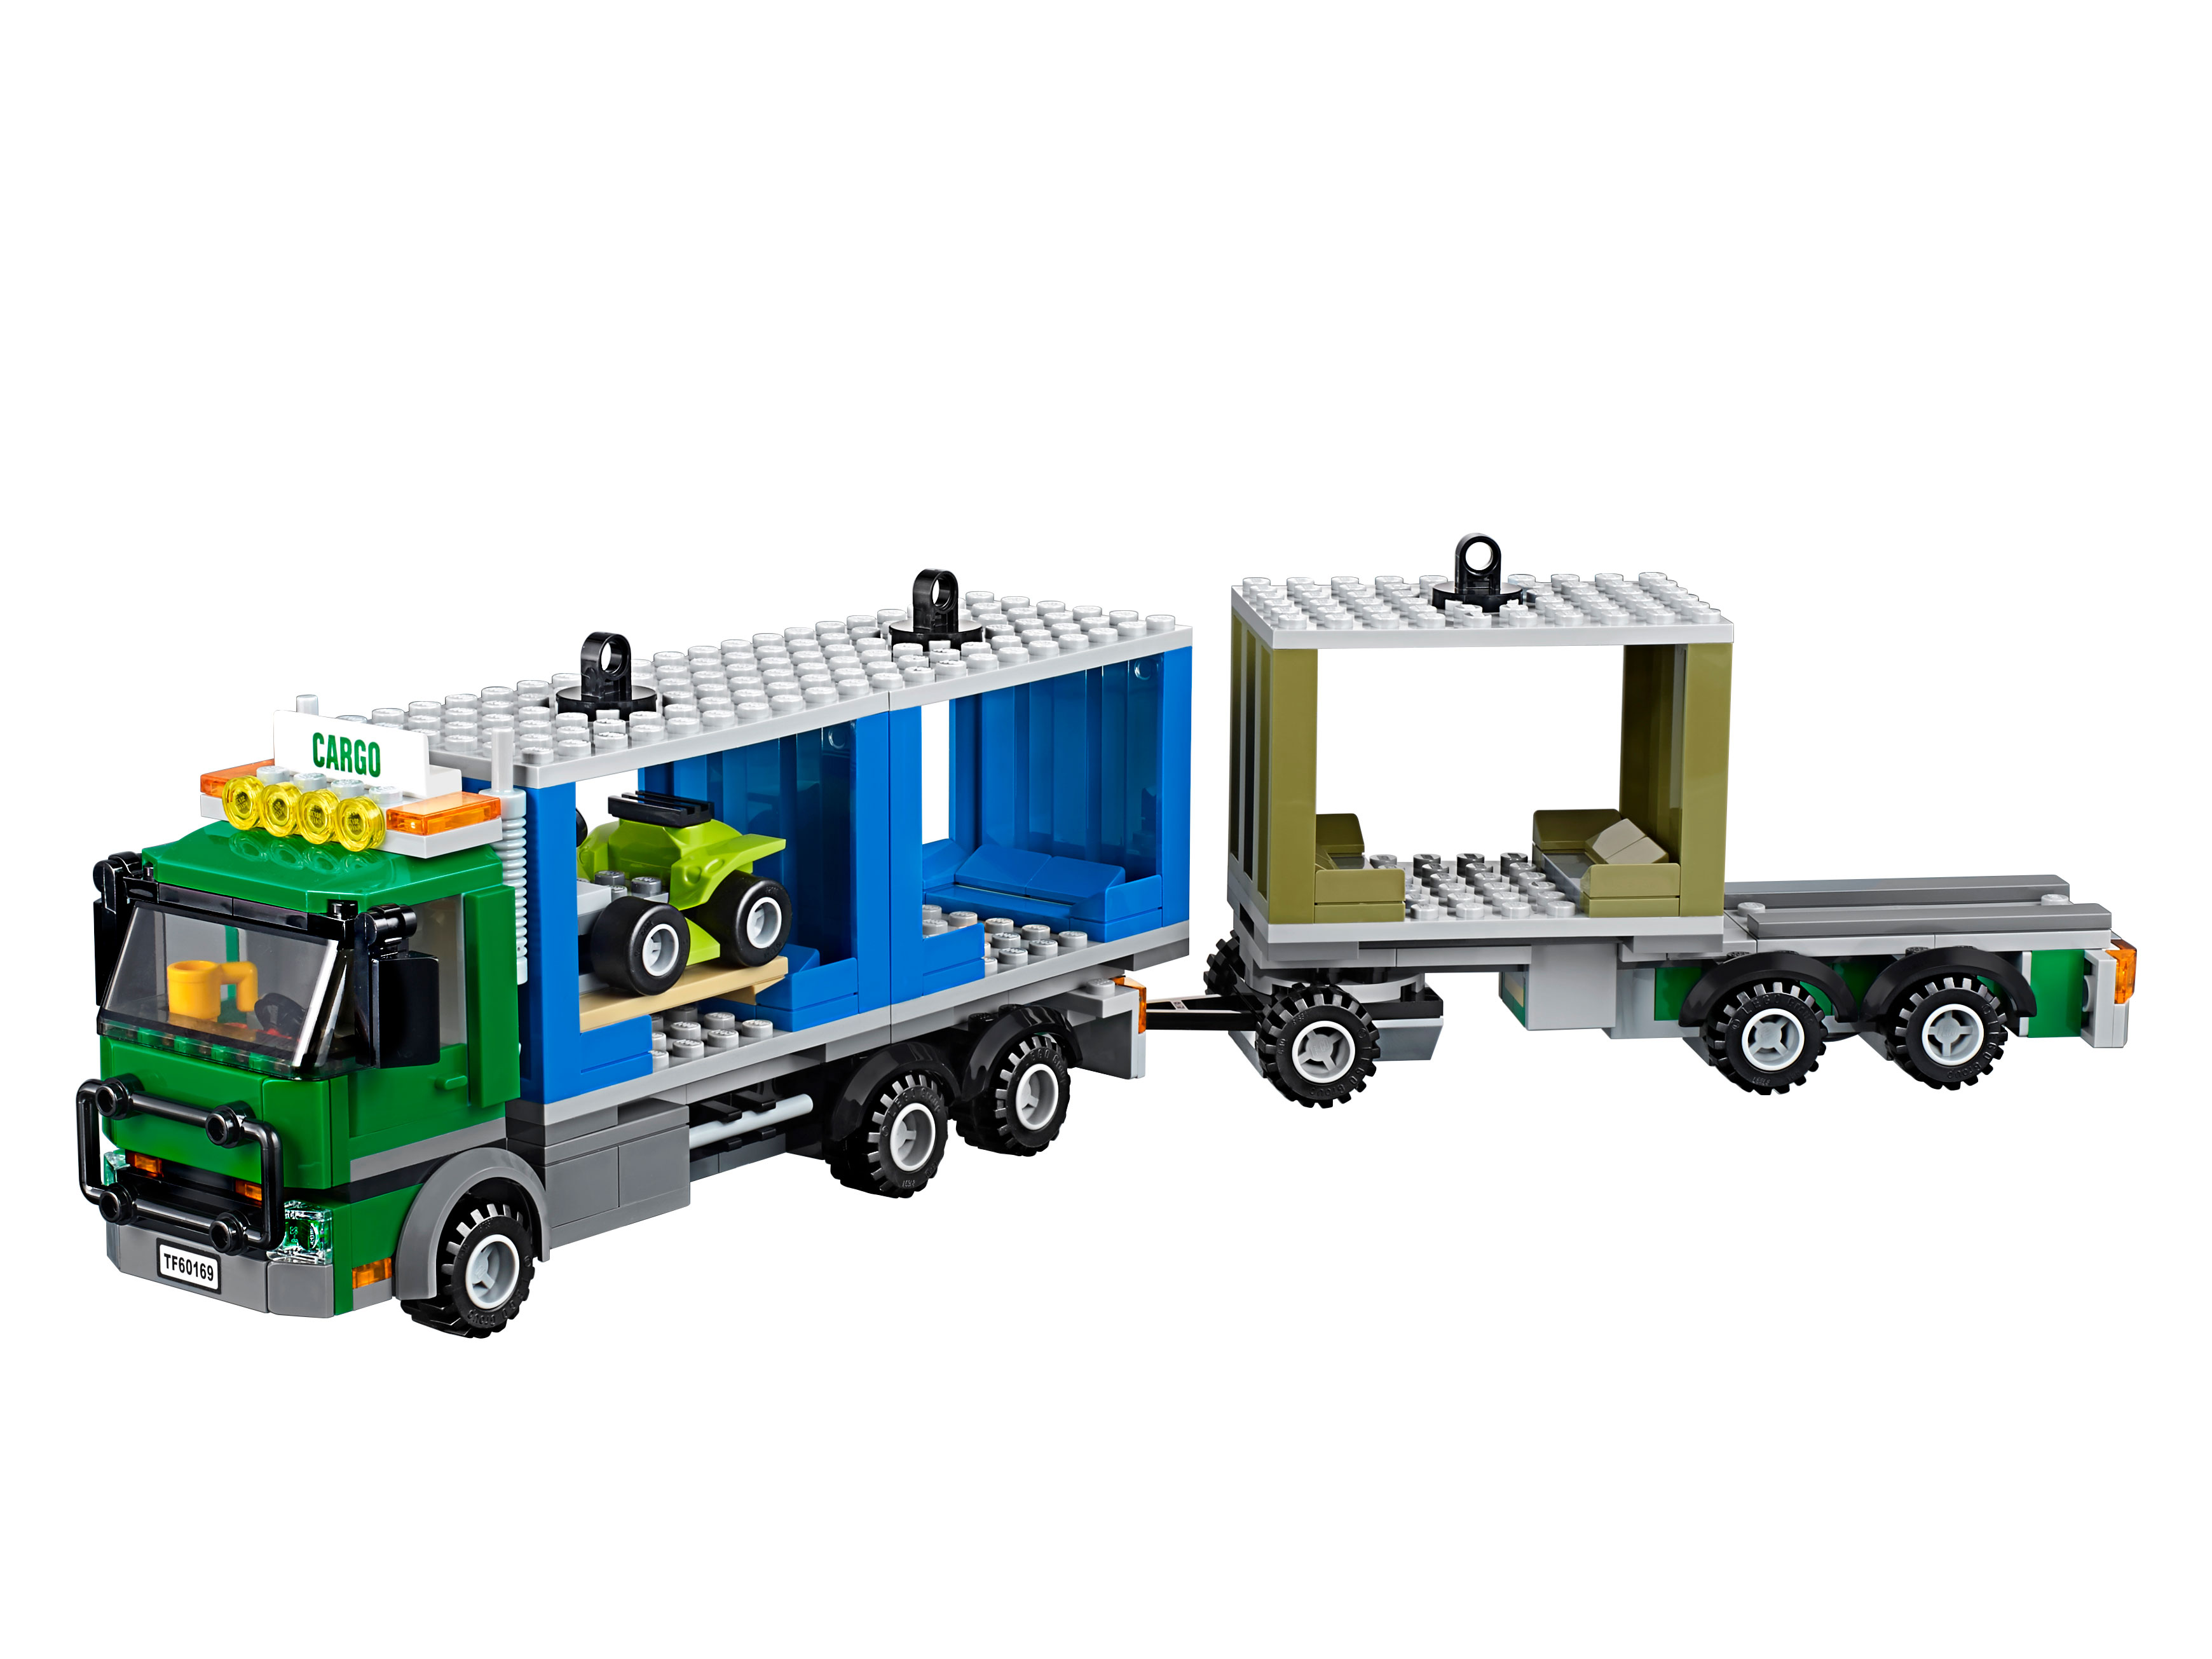 LEGO 60020 Cargo Truck Set Parts Inventory and